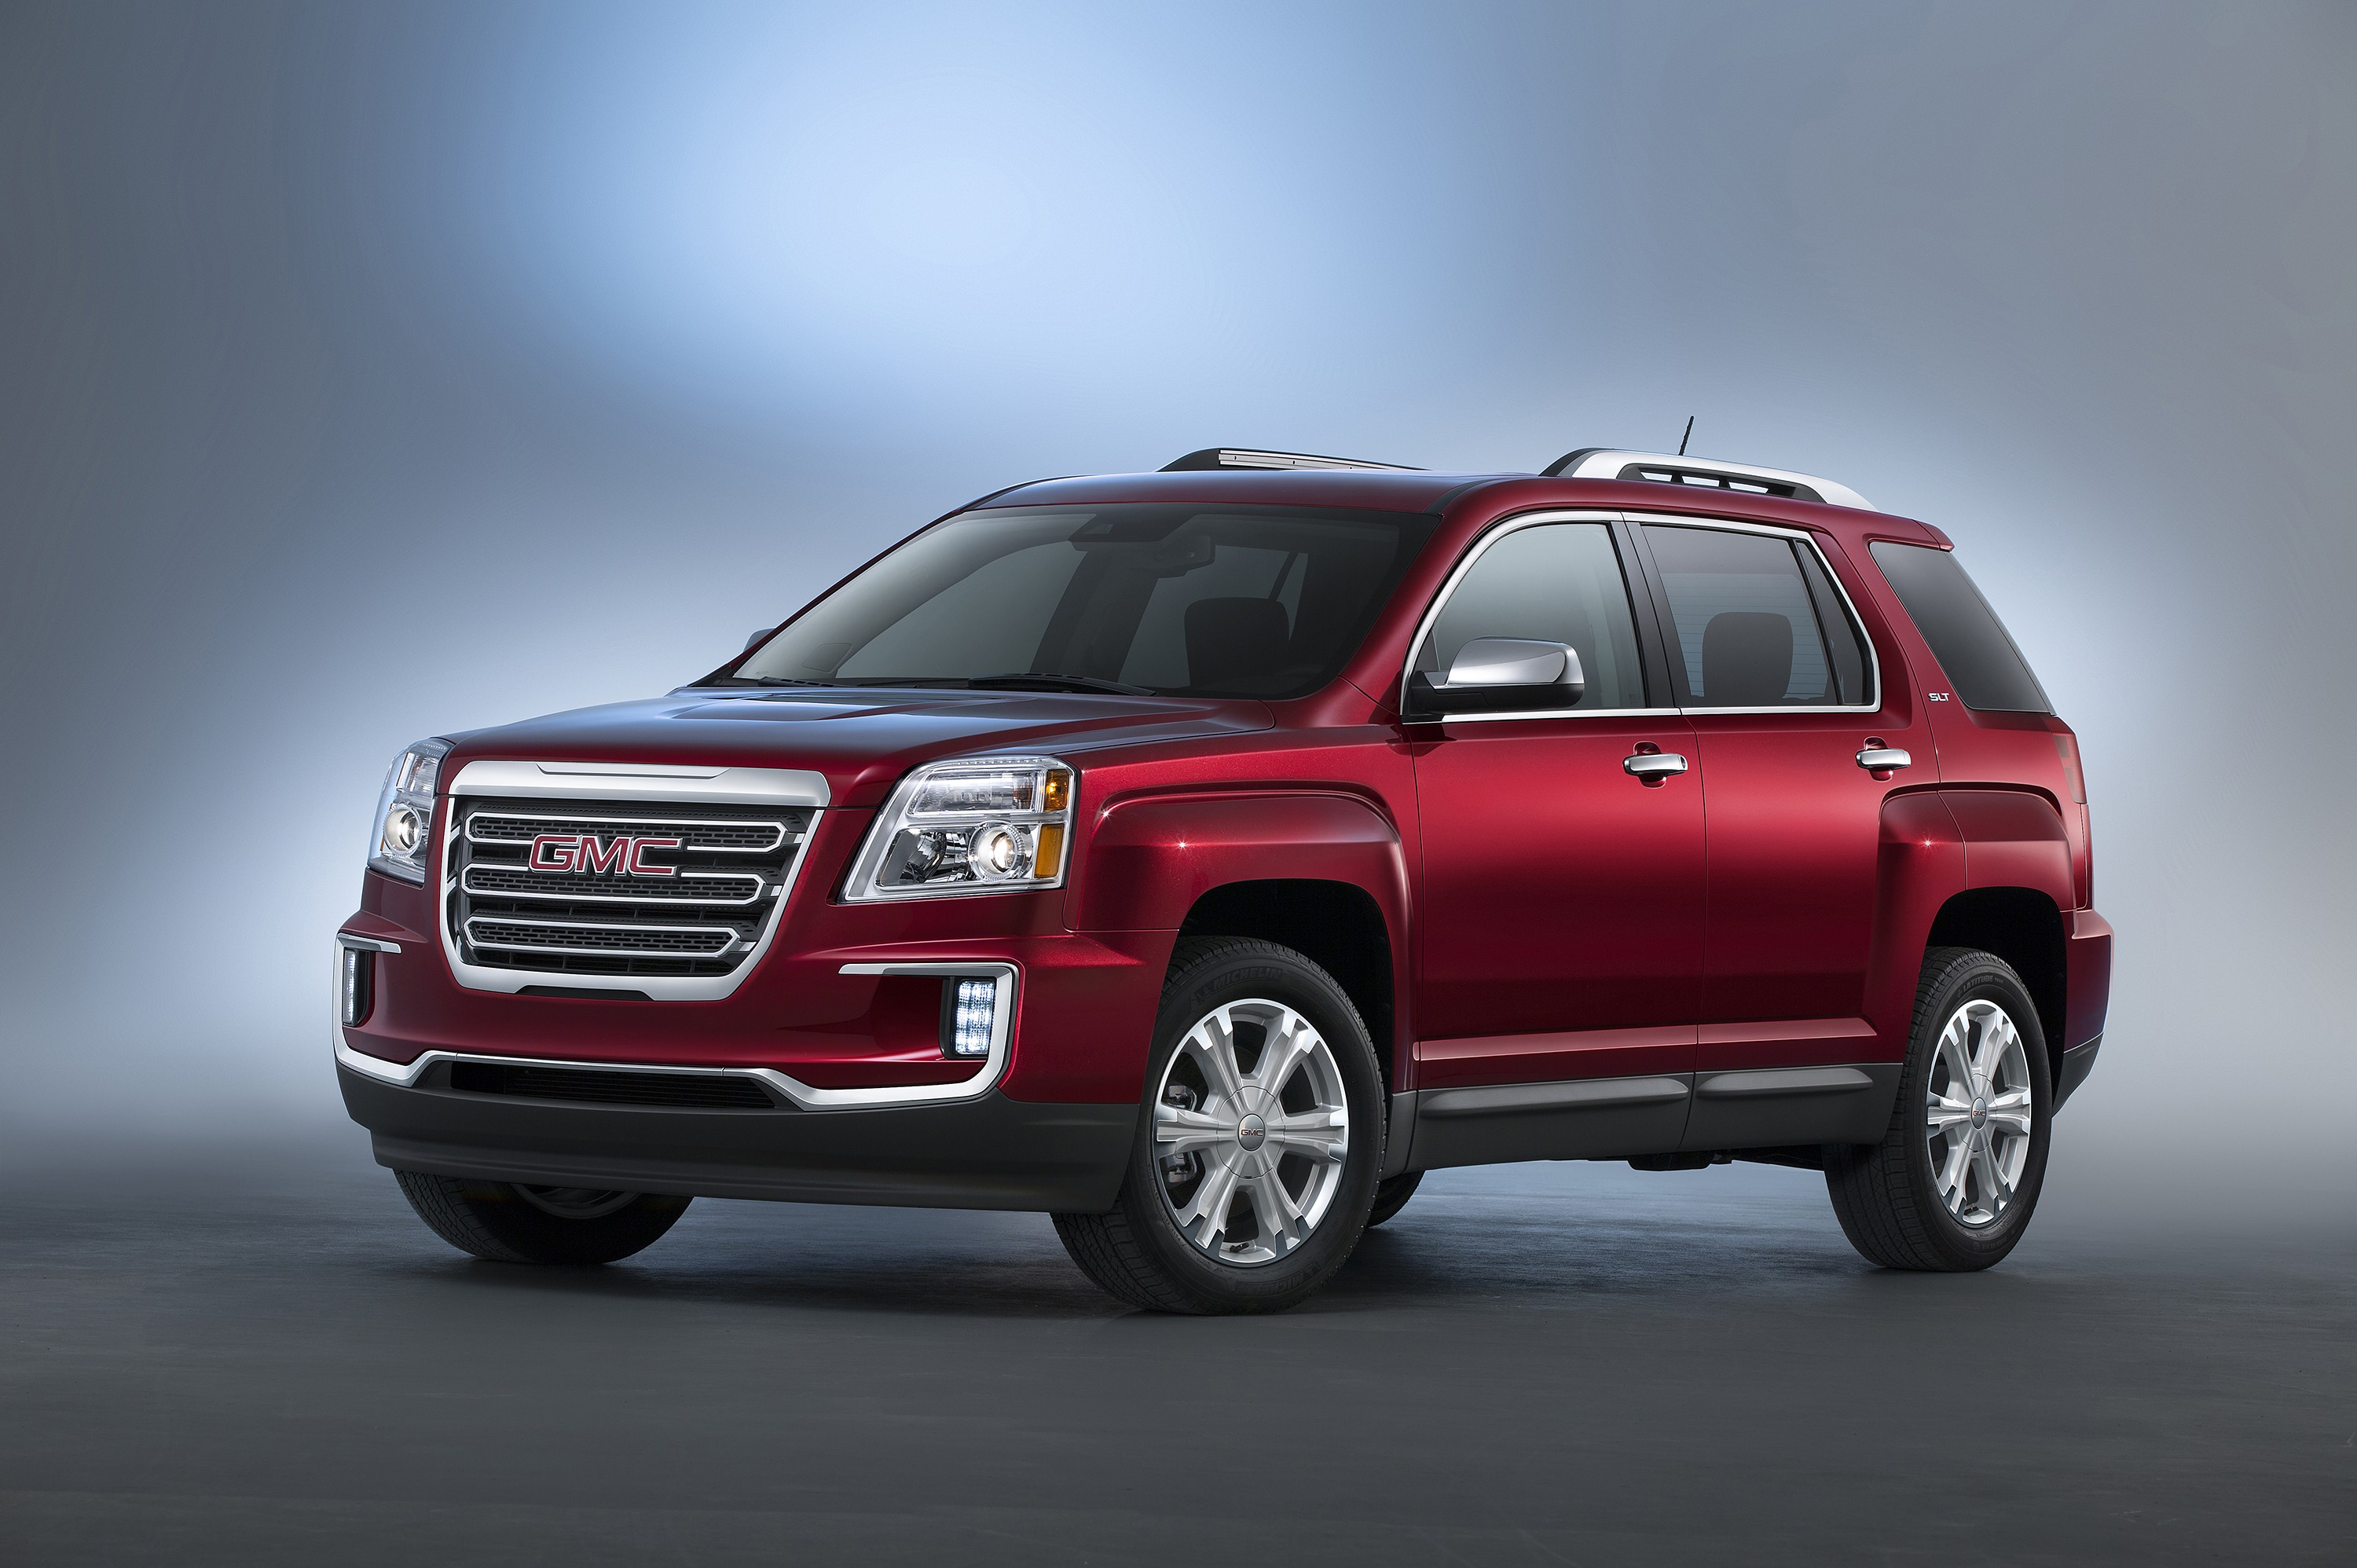 2016 gmc terrain terrain denali unveiled changes are minimal autoevolution. Black Bedroom Furniture Sets. Home Design Ideas